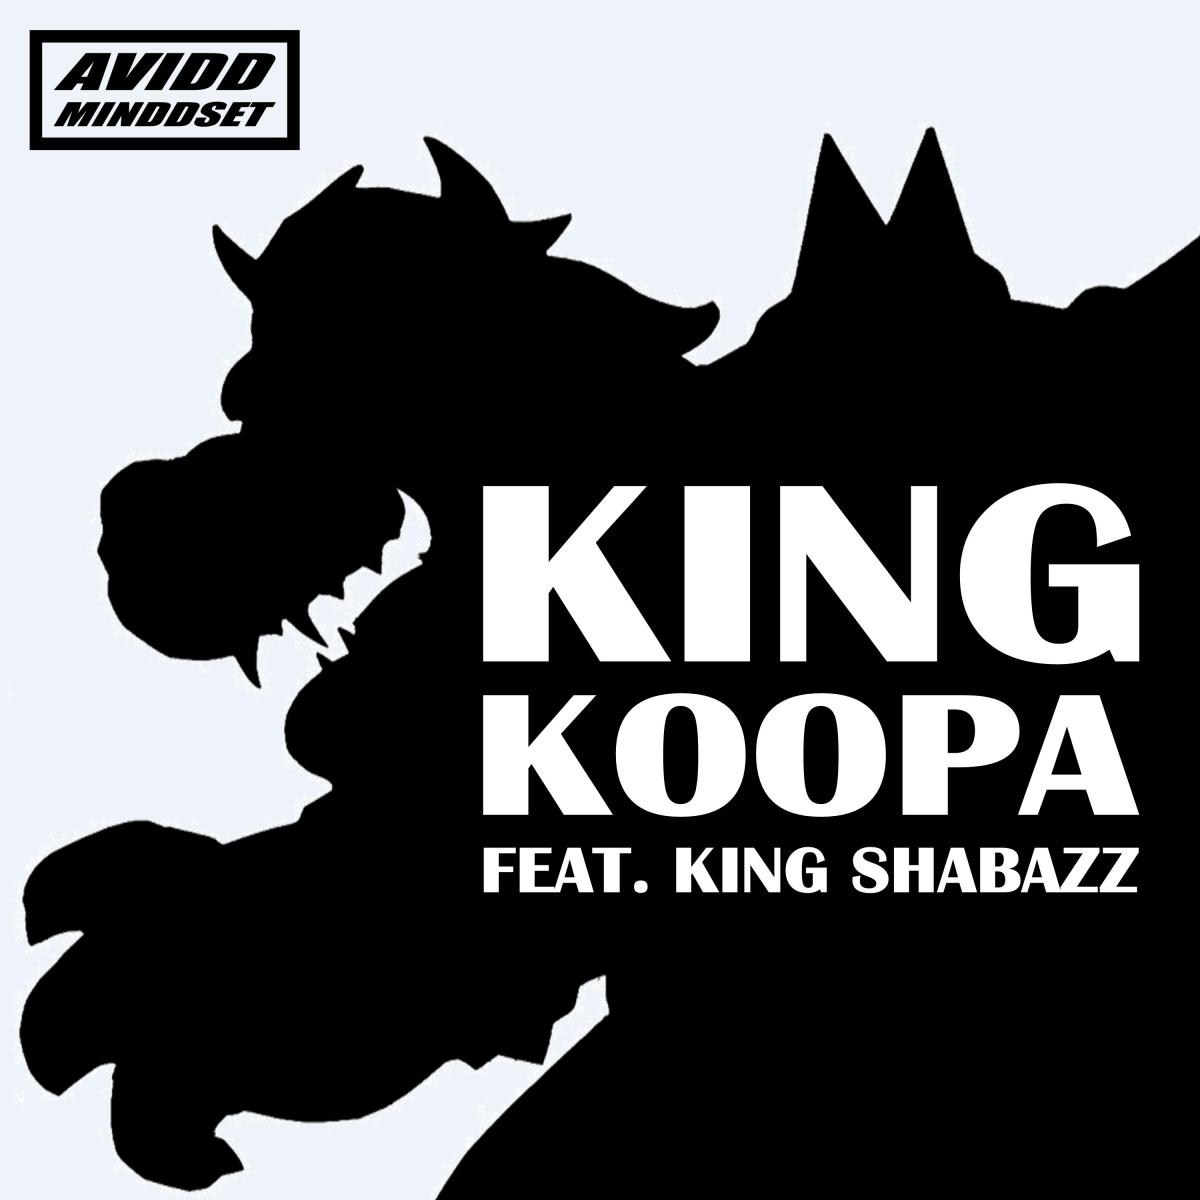 """Featured image for Avidd Music Alert: New Single """"King Koopa"""" Featuring King Shabazz OUT NOW!"""